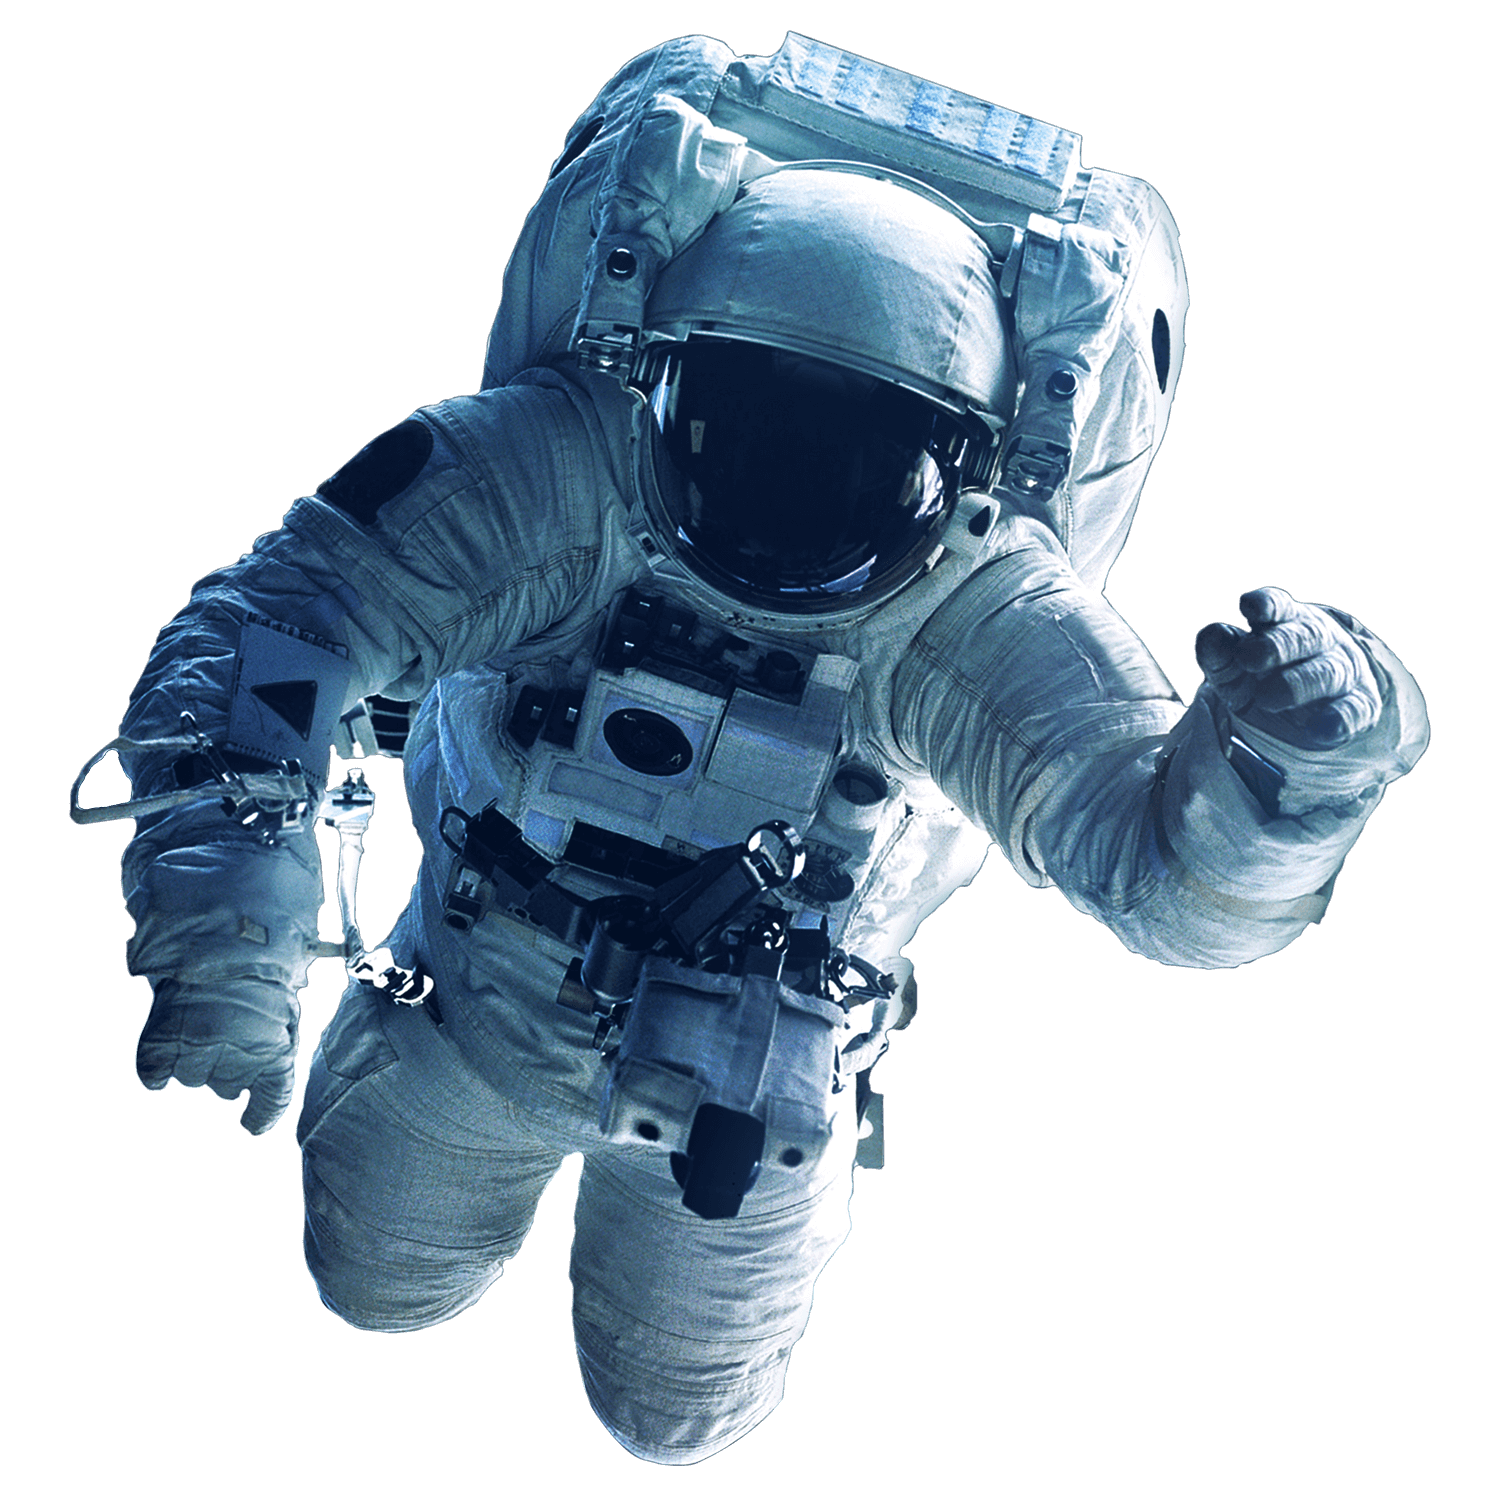 astronaut space spacewalk NASA spacesuit ISS Internation Space Station